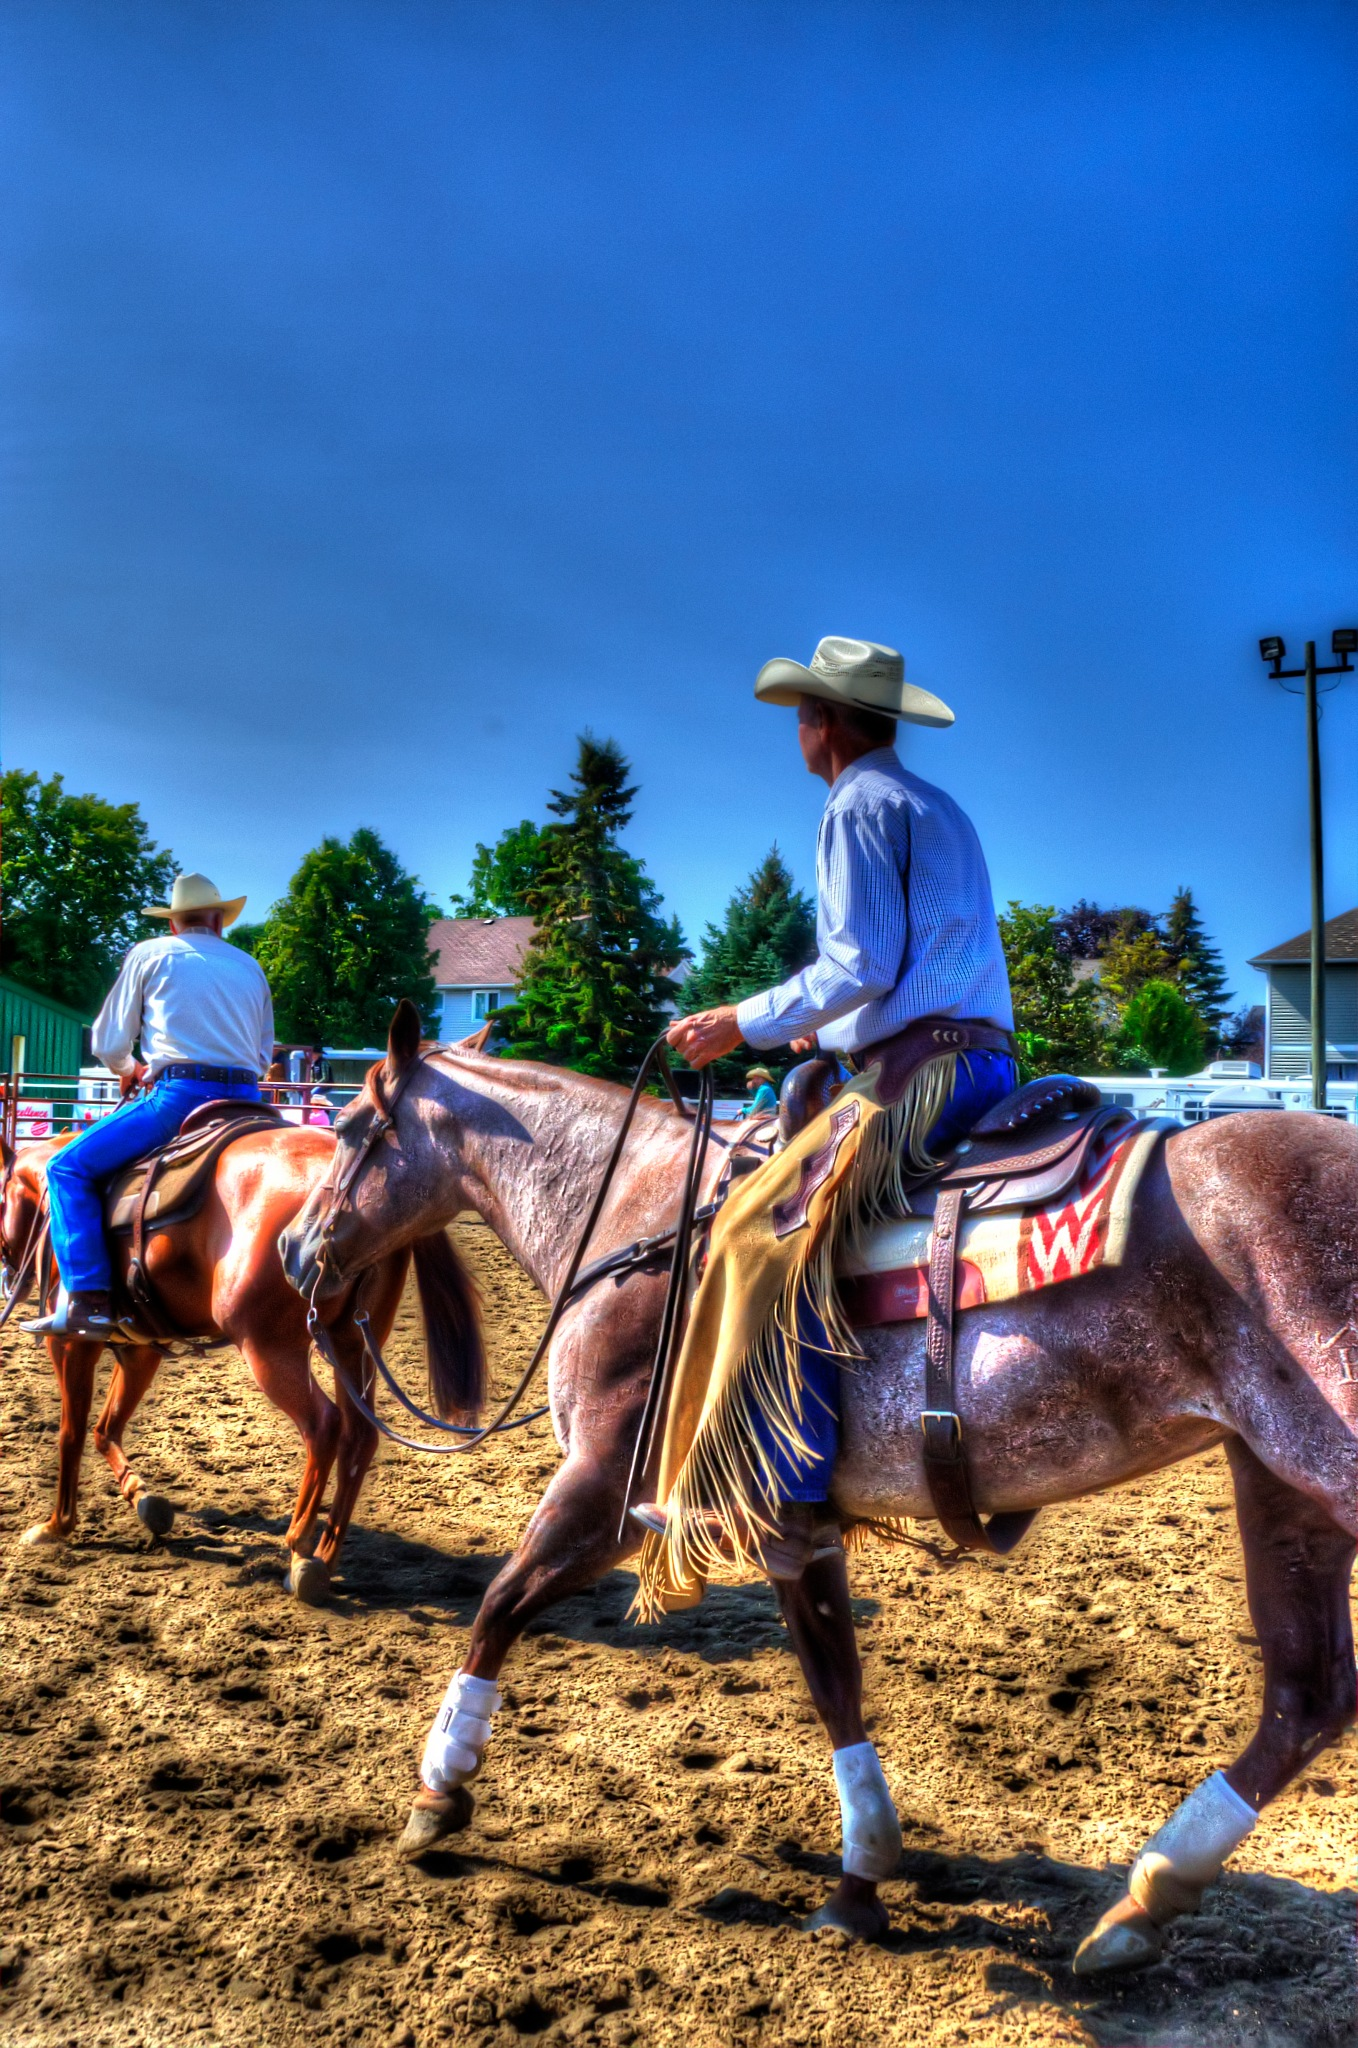 At The Russell Fair by Paul Deveau